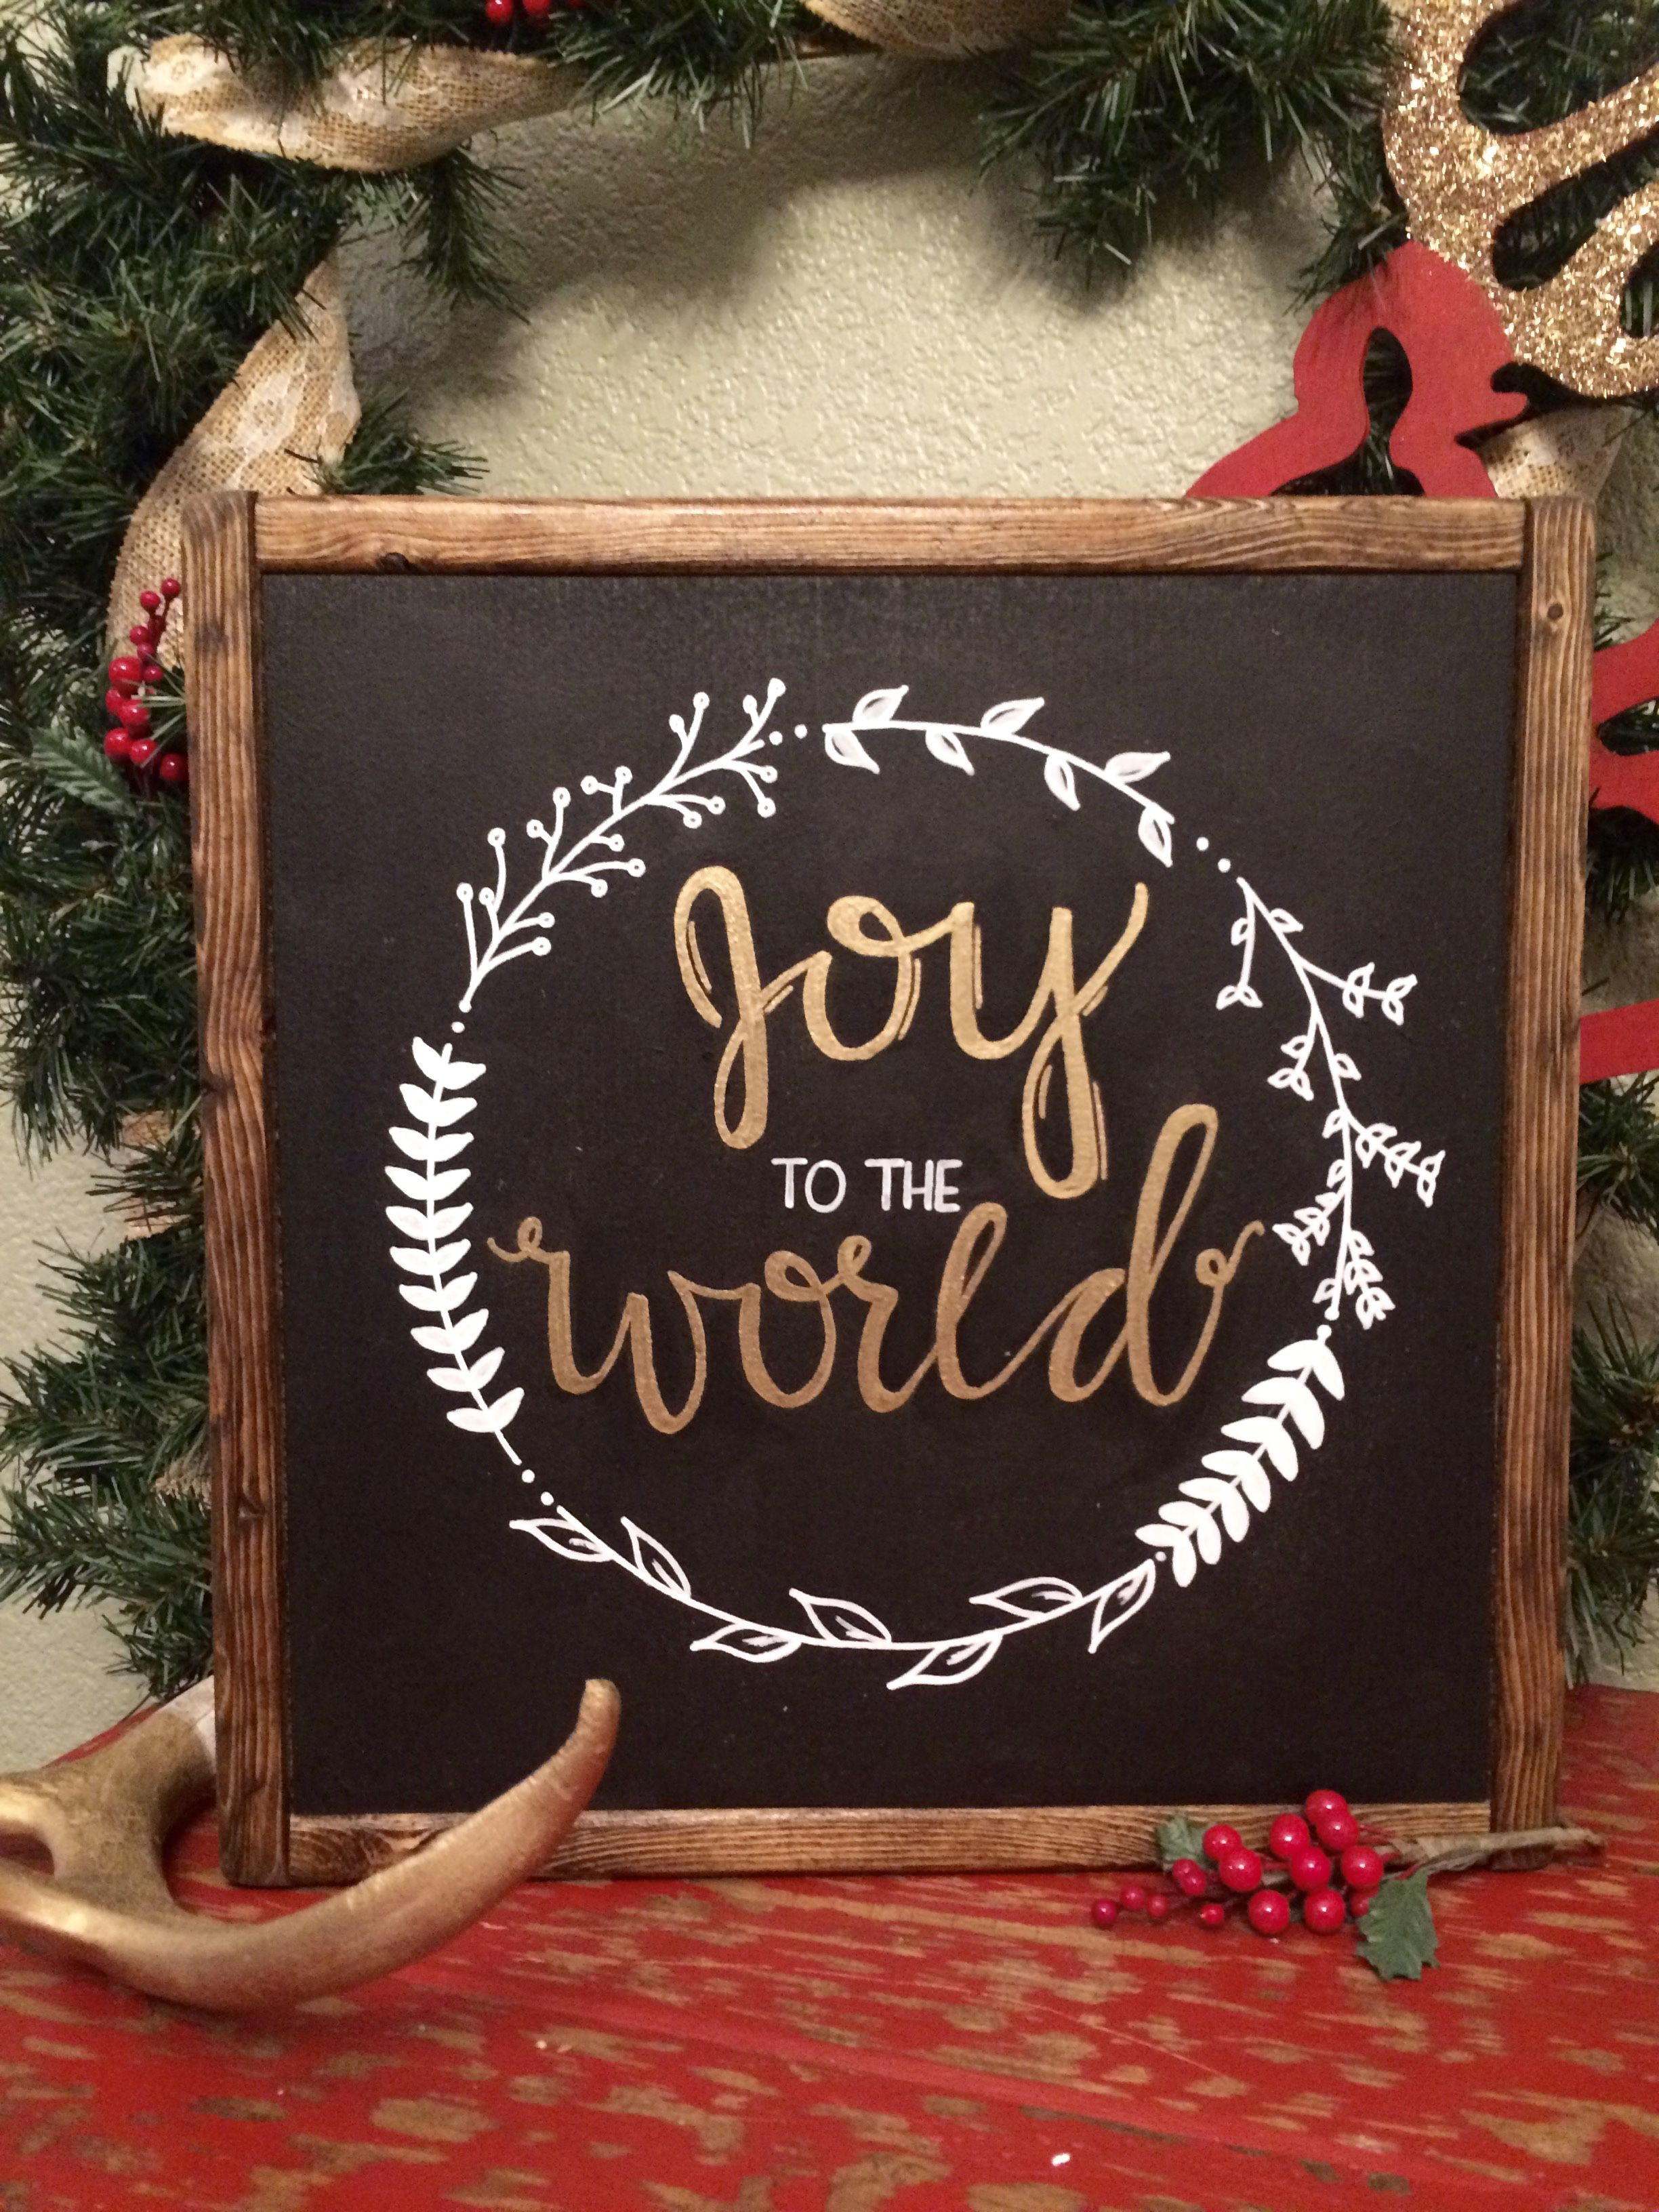 joy to the world sign christmas signs holiday decor joy sign christmas sign holiday decor holiday sign christmas decor gold christmas signs